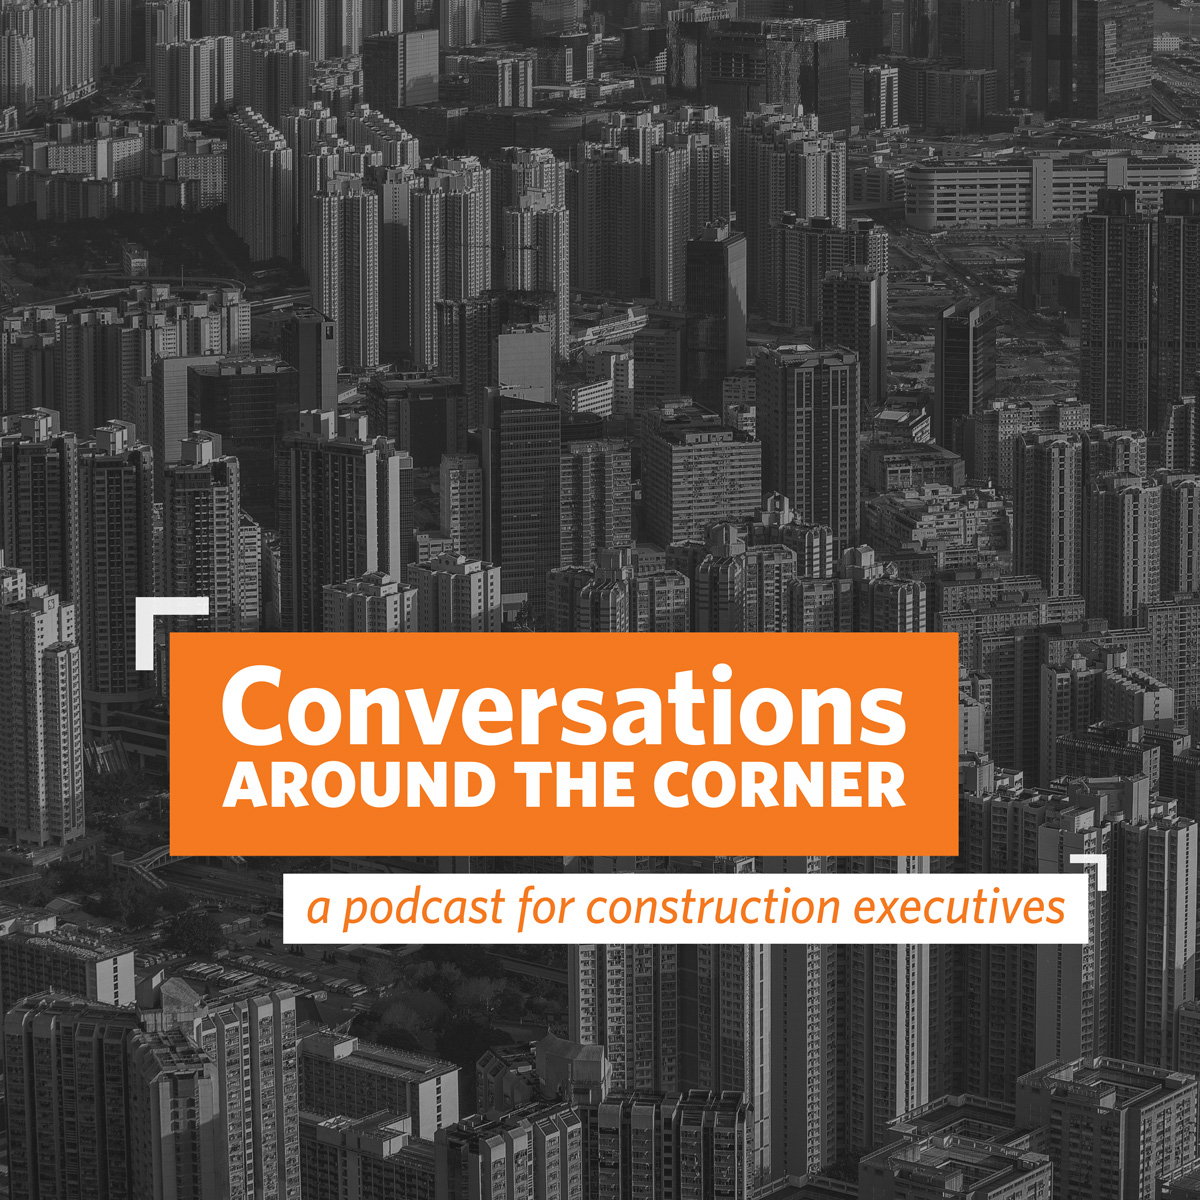 New Podcast Interviews the CEOs of the Top 300 Construction Companies